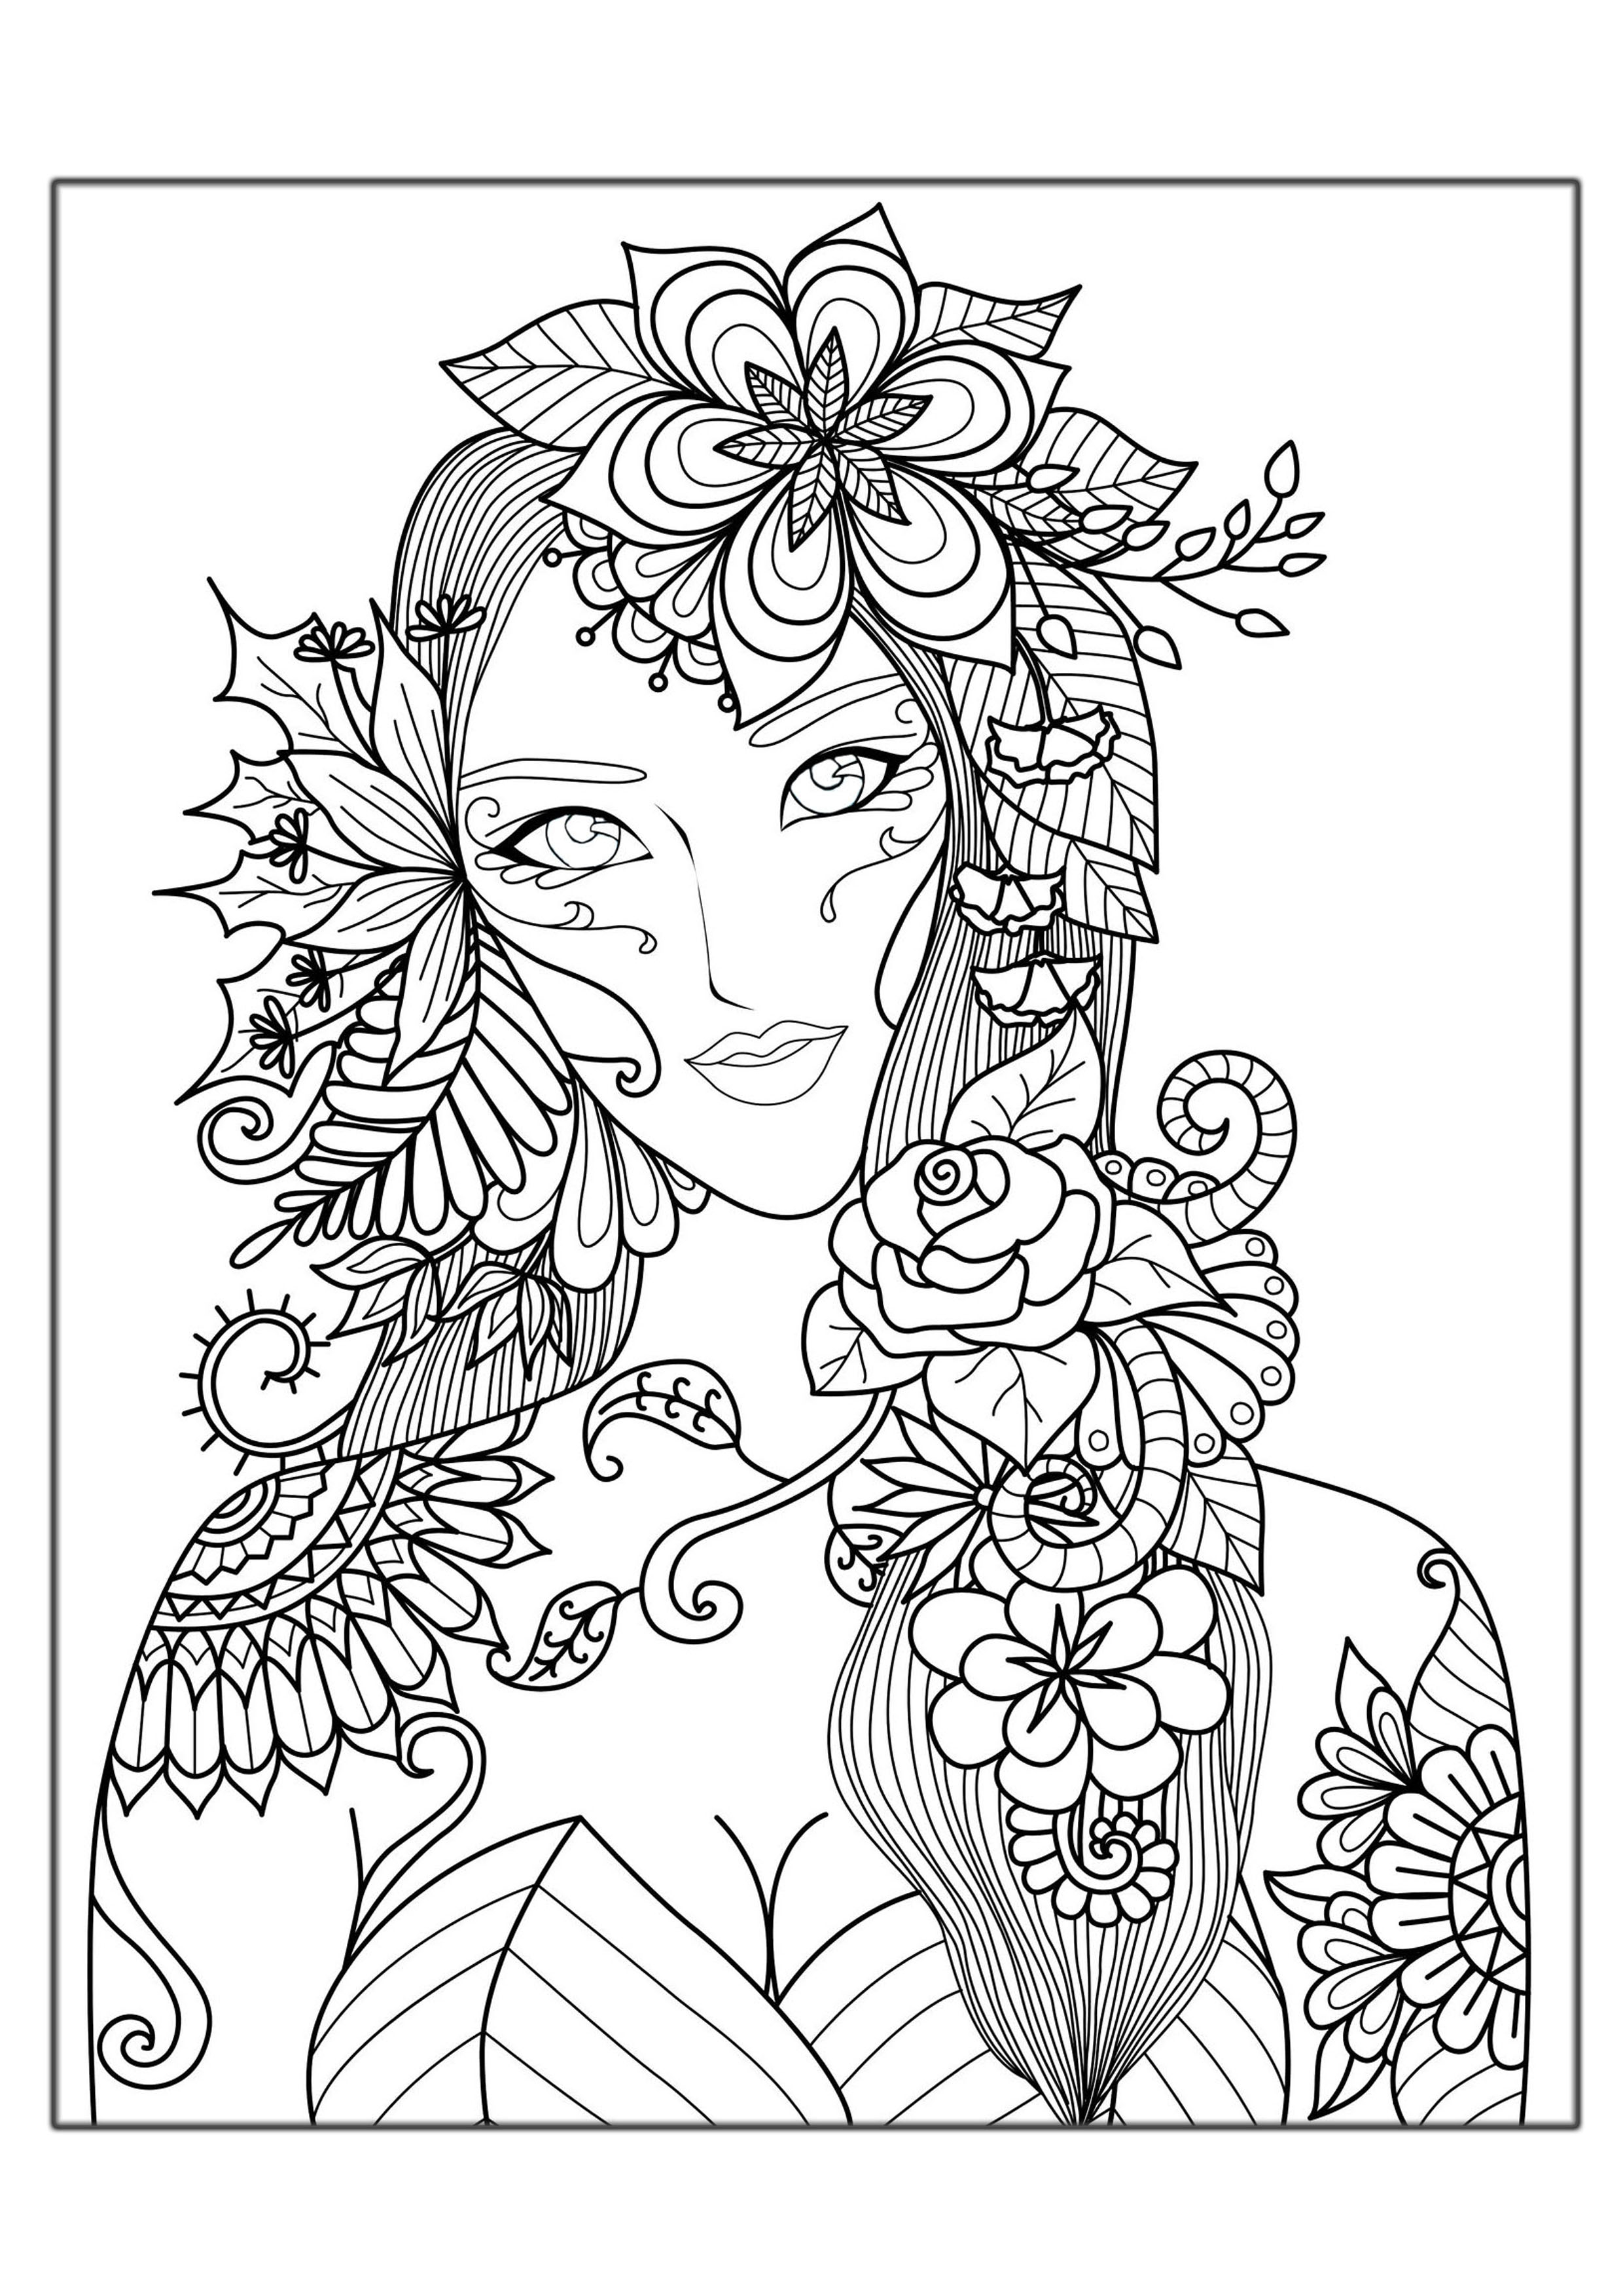 - Free Coloring Pages For Adults To Print Hard Coloring Pages For